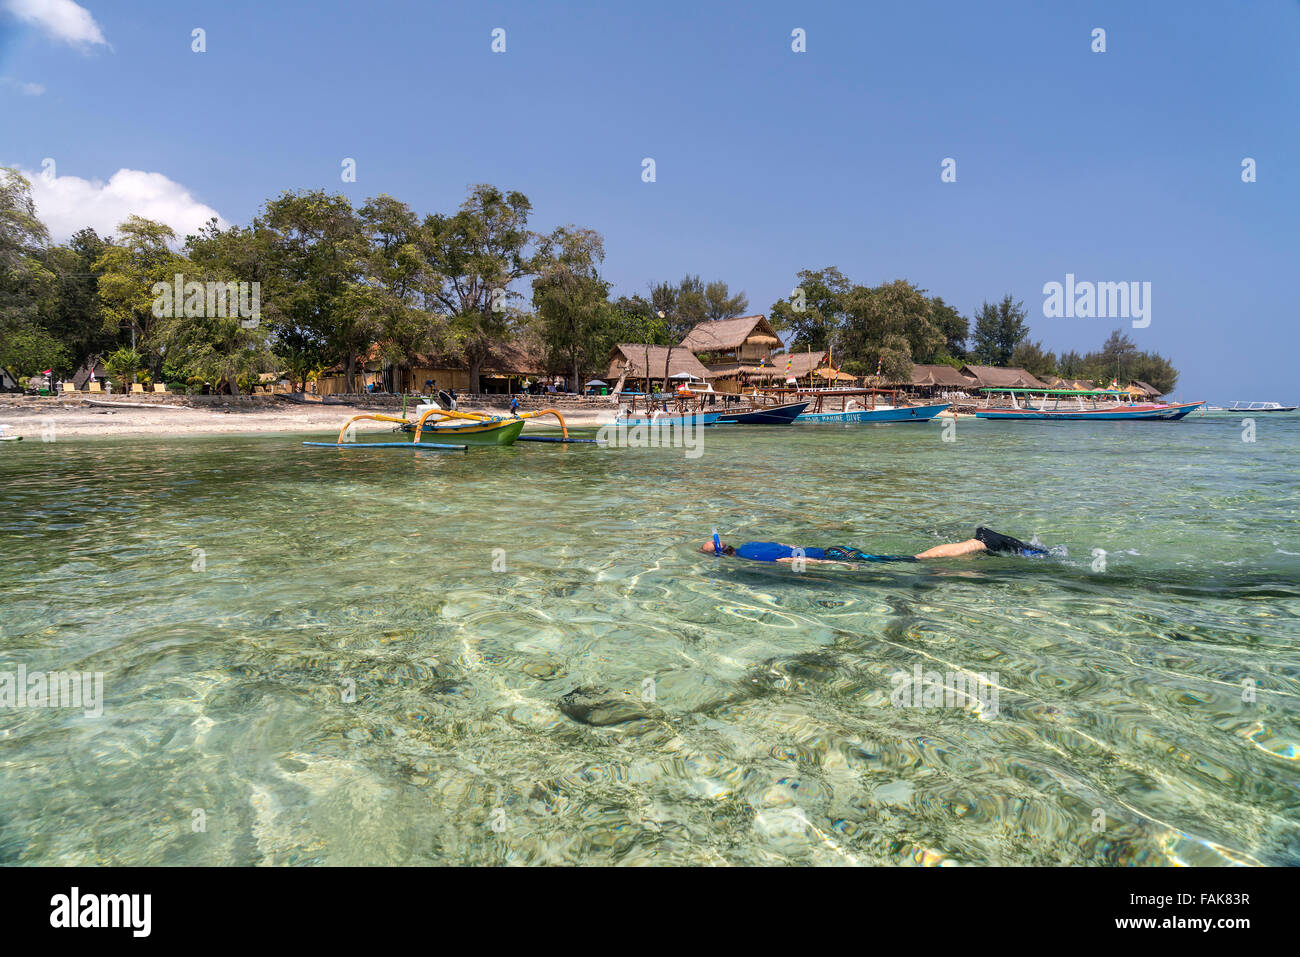 snorkeling near the beach on the small island Gili Air, Lombok, Indonesia, Asia - Stock Image